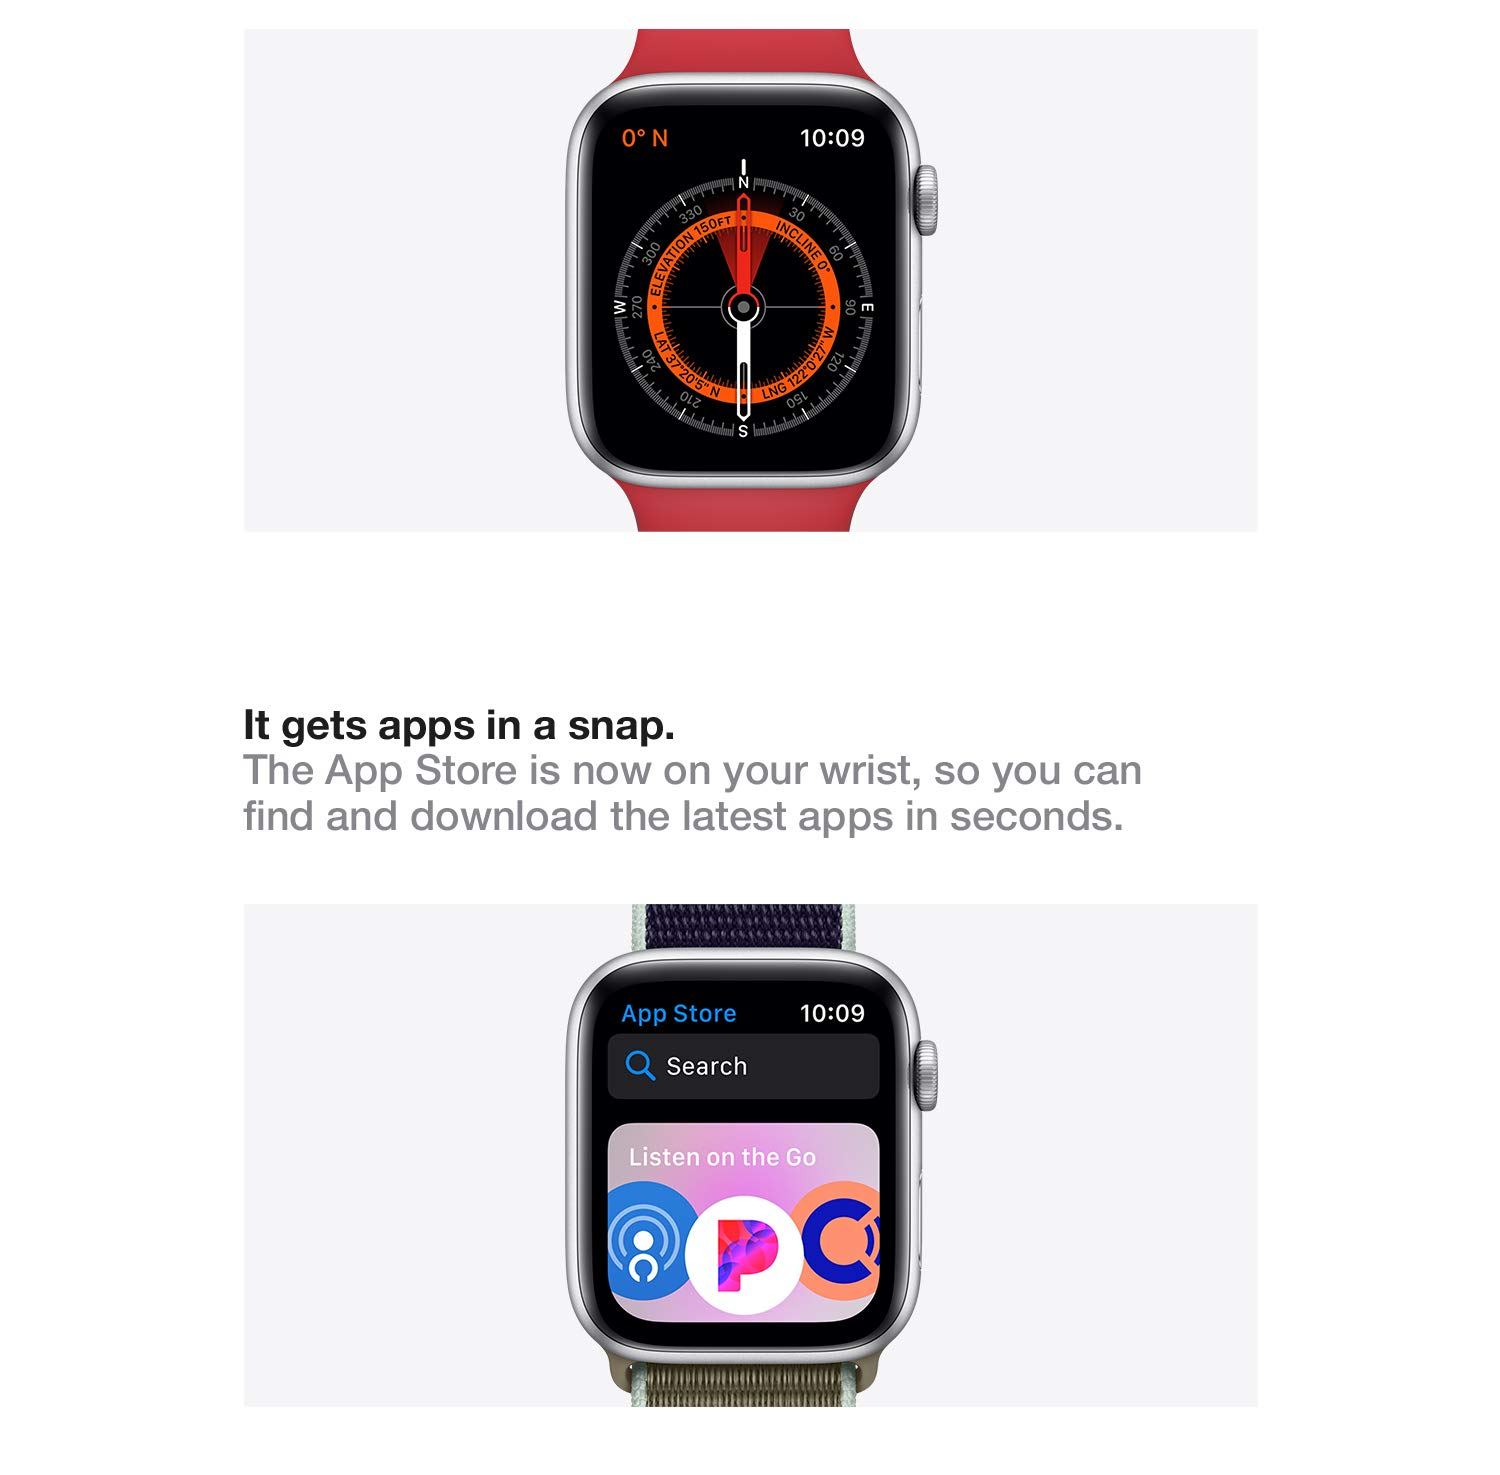 It gets apps in a snap. The App Store is now on your wrist, so you can find and download the latest apps in seconds.